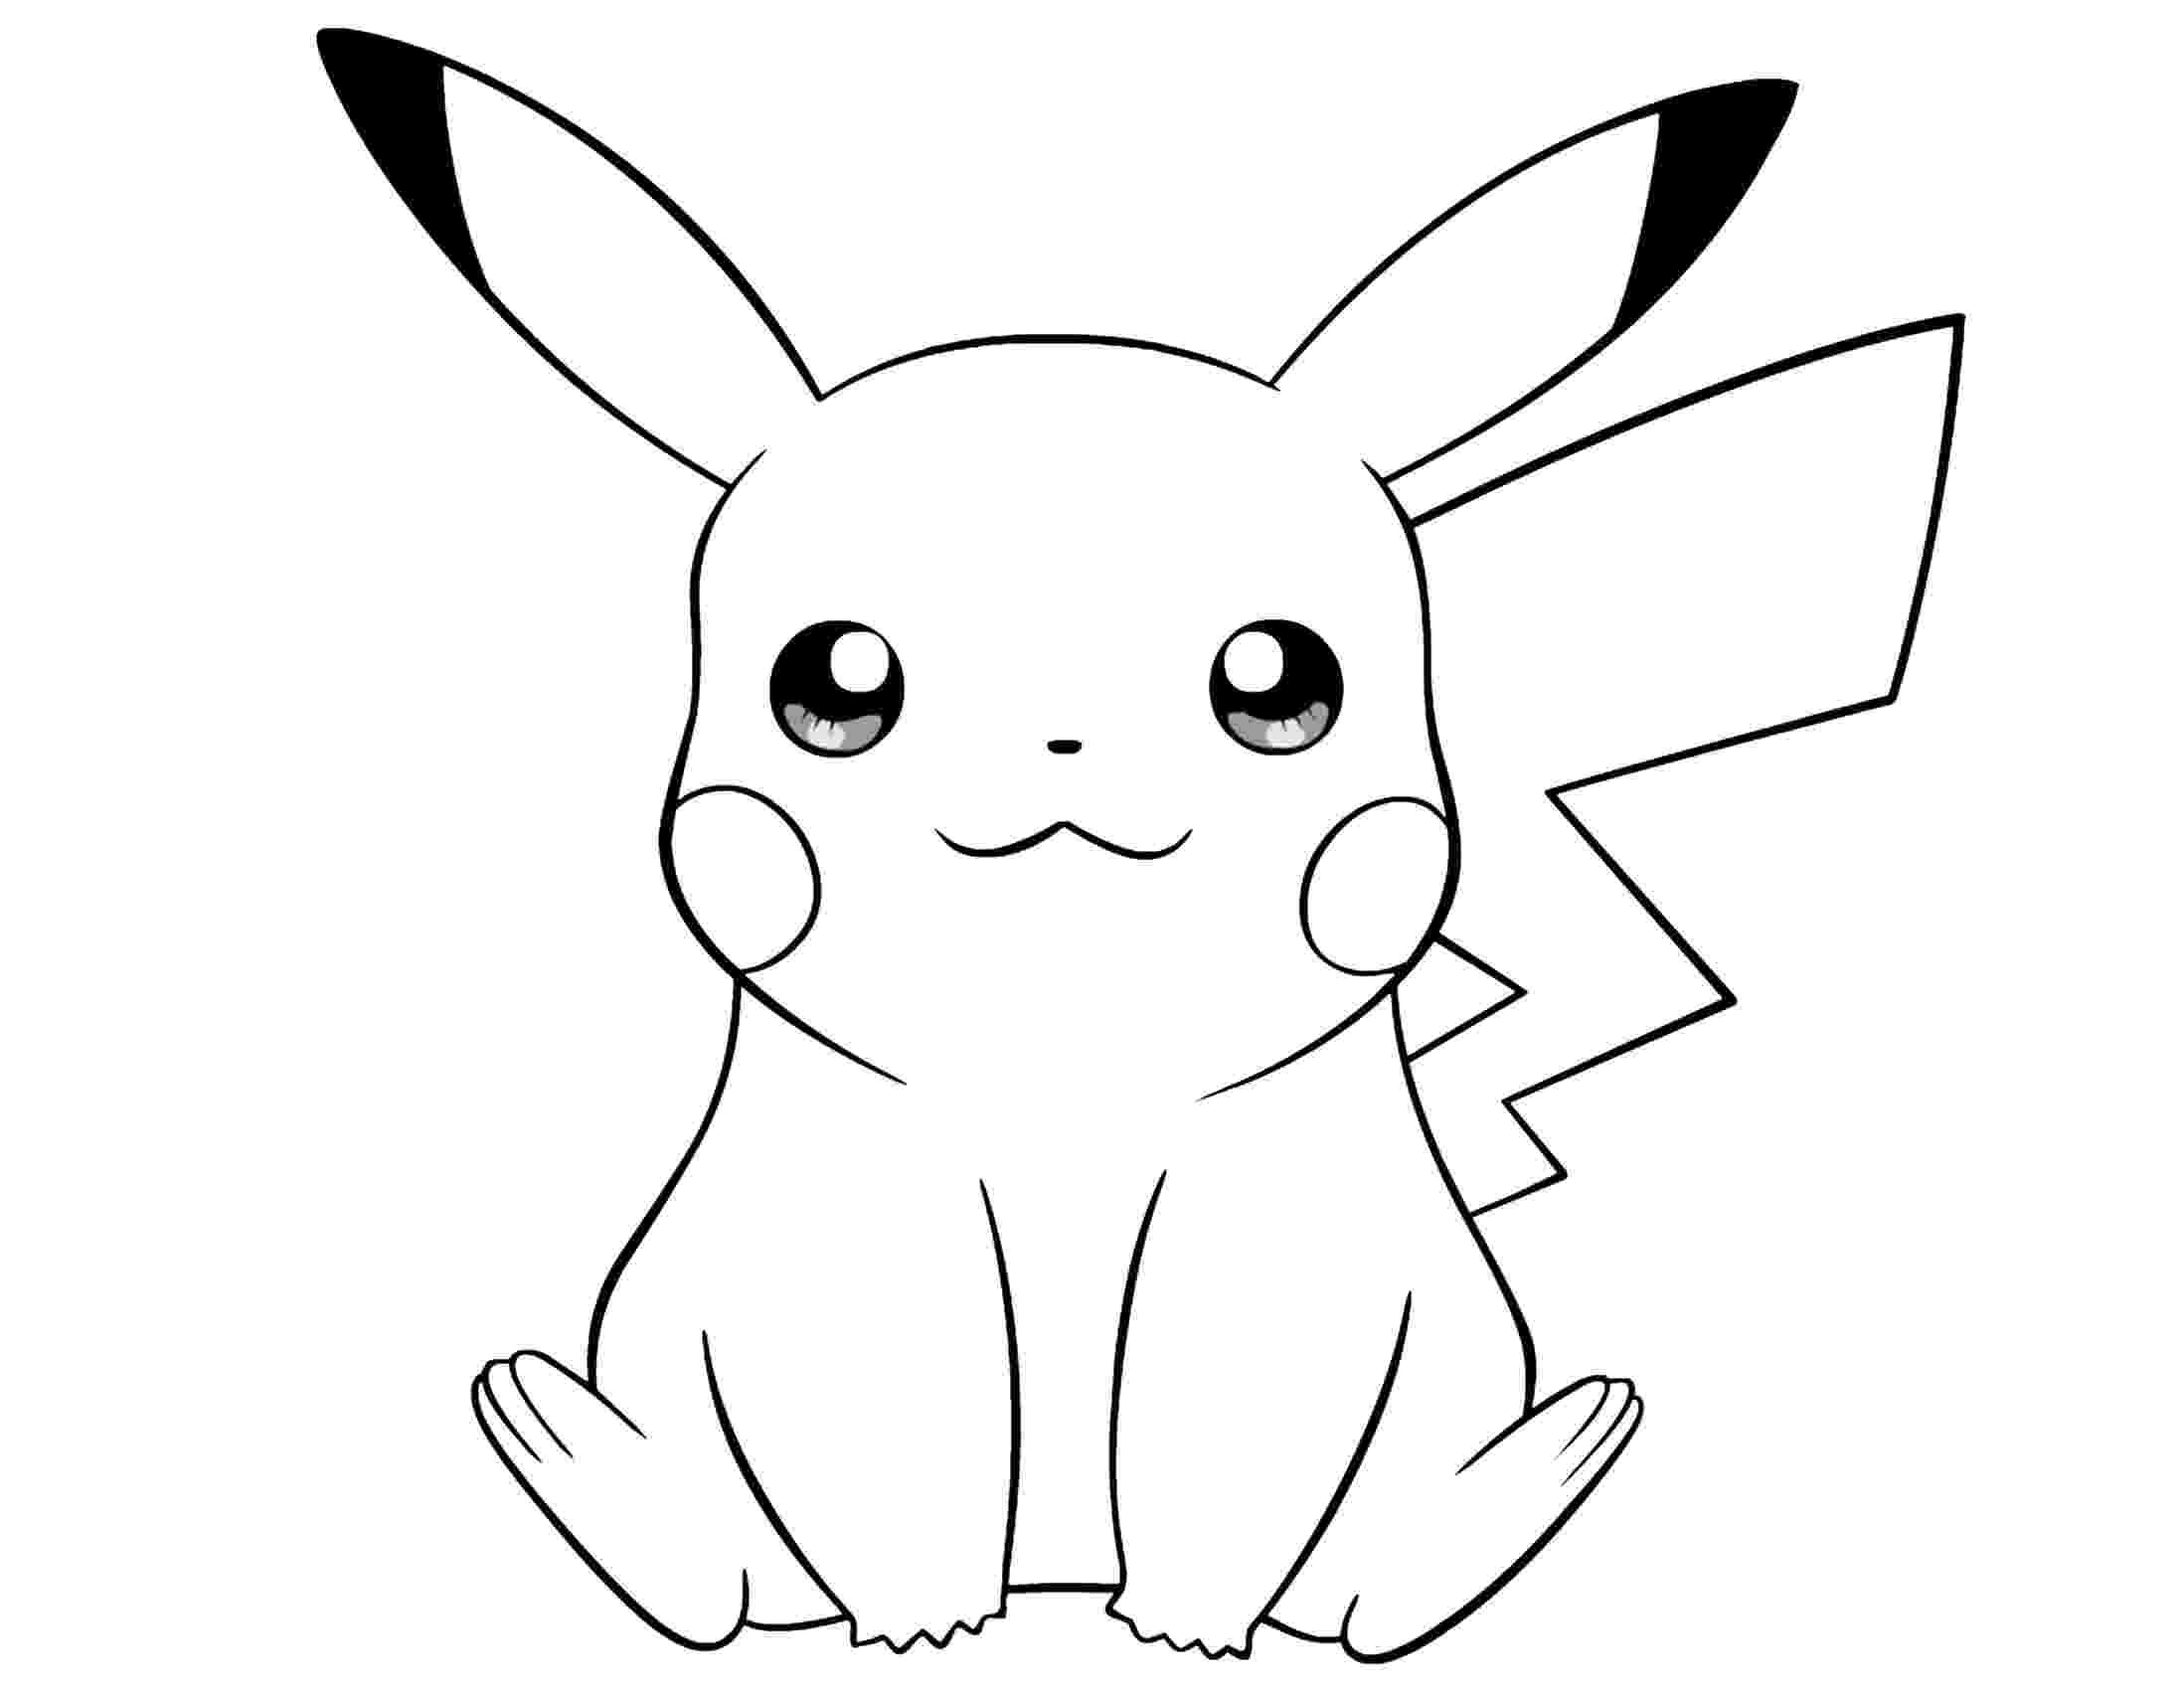 pikachu coloring sheet printable pikachu coloring pages for kids cool2bkids coloring sheet pikachu